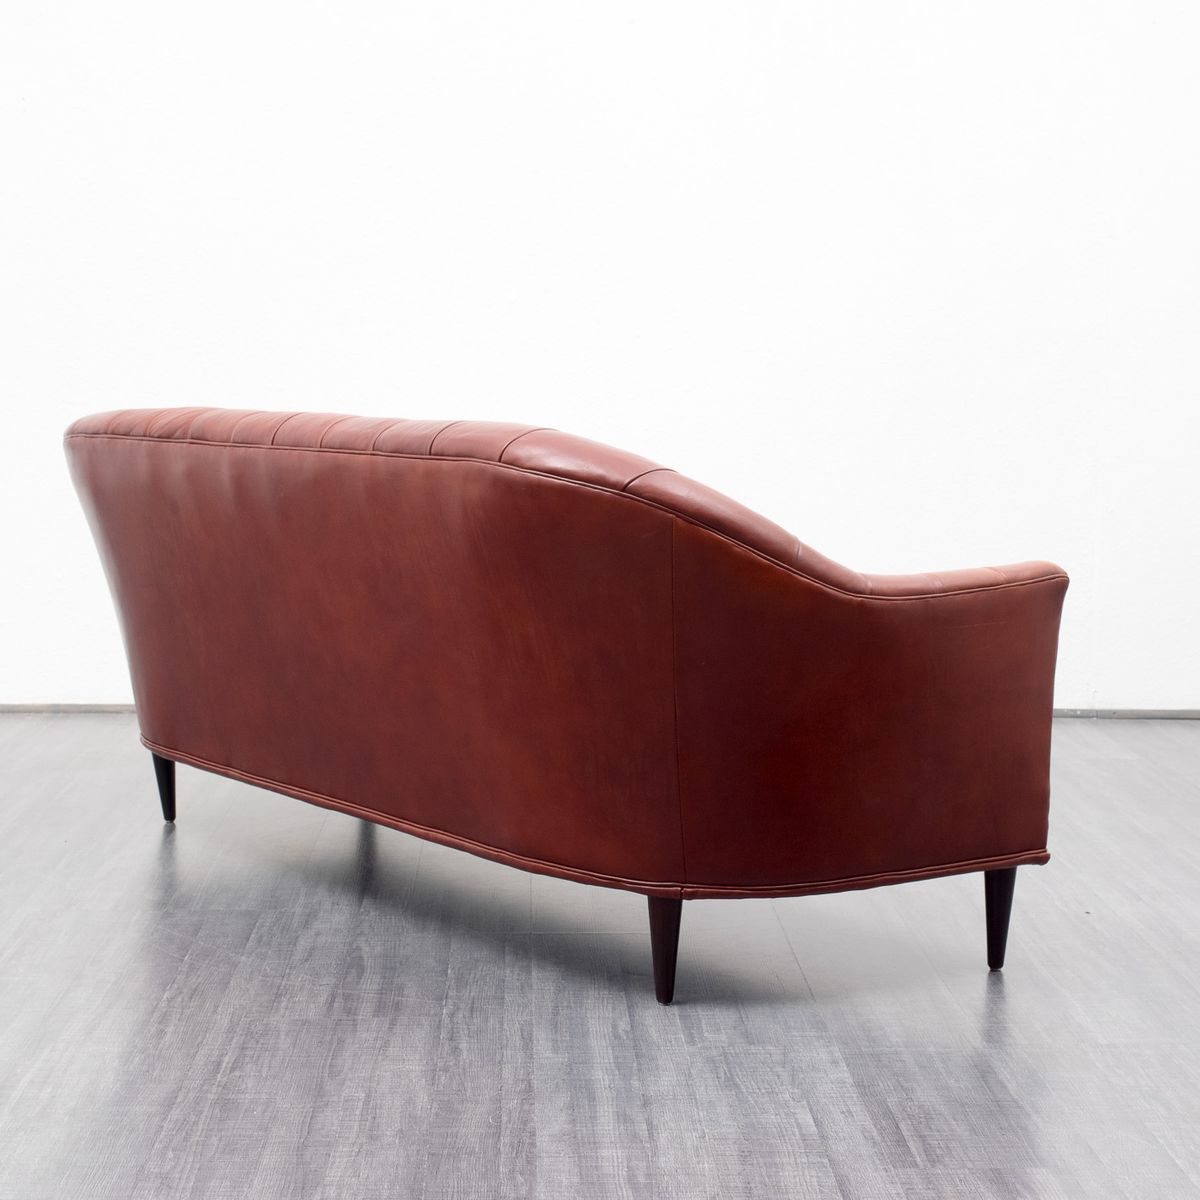 Mid century three seater leather sofa 1960s for sale at for Sofa 6 seater